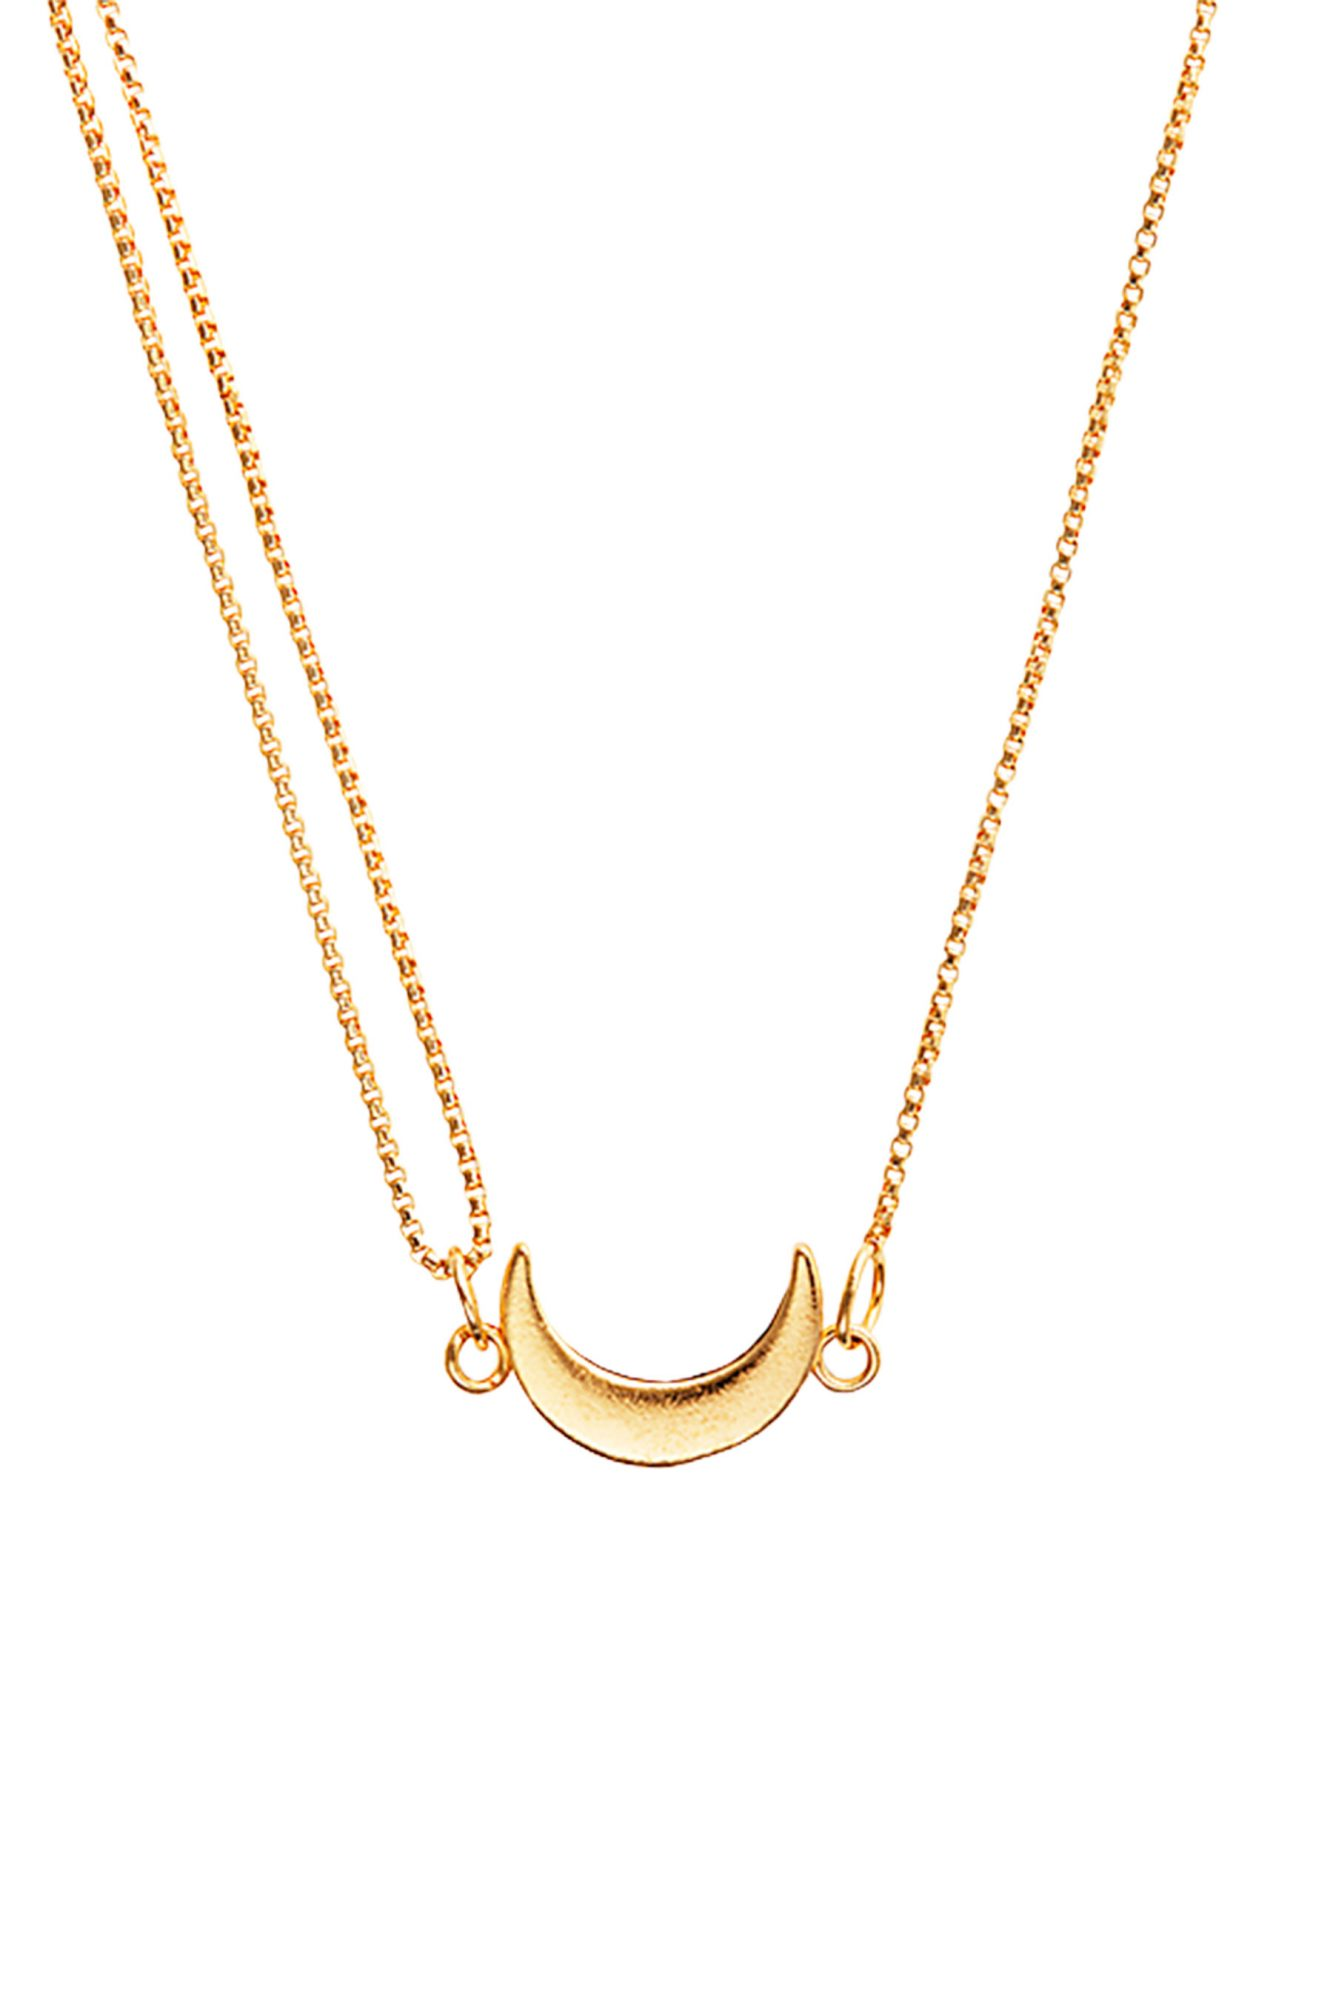 ALEX AND ANI MOON PULL CHAIN GOLD-1_silo